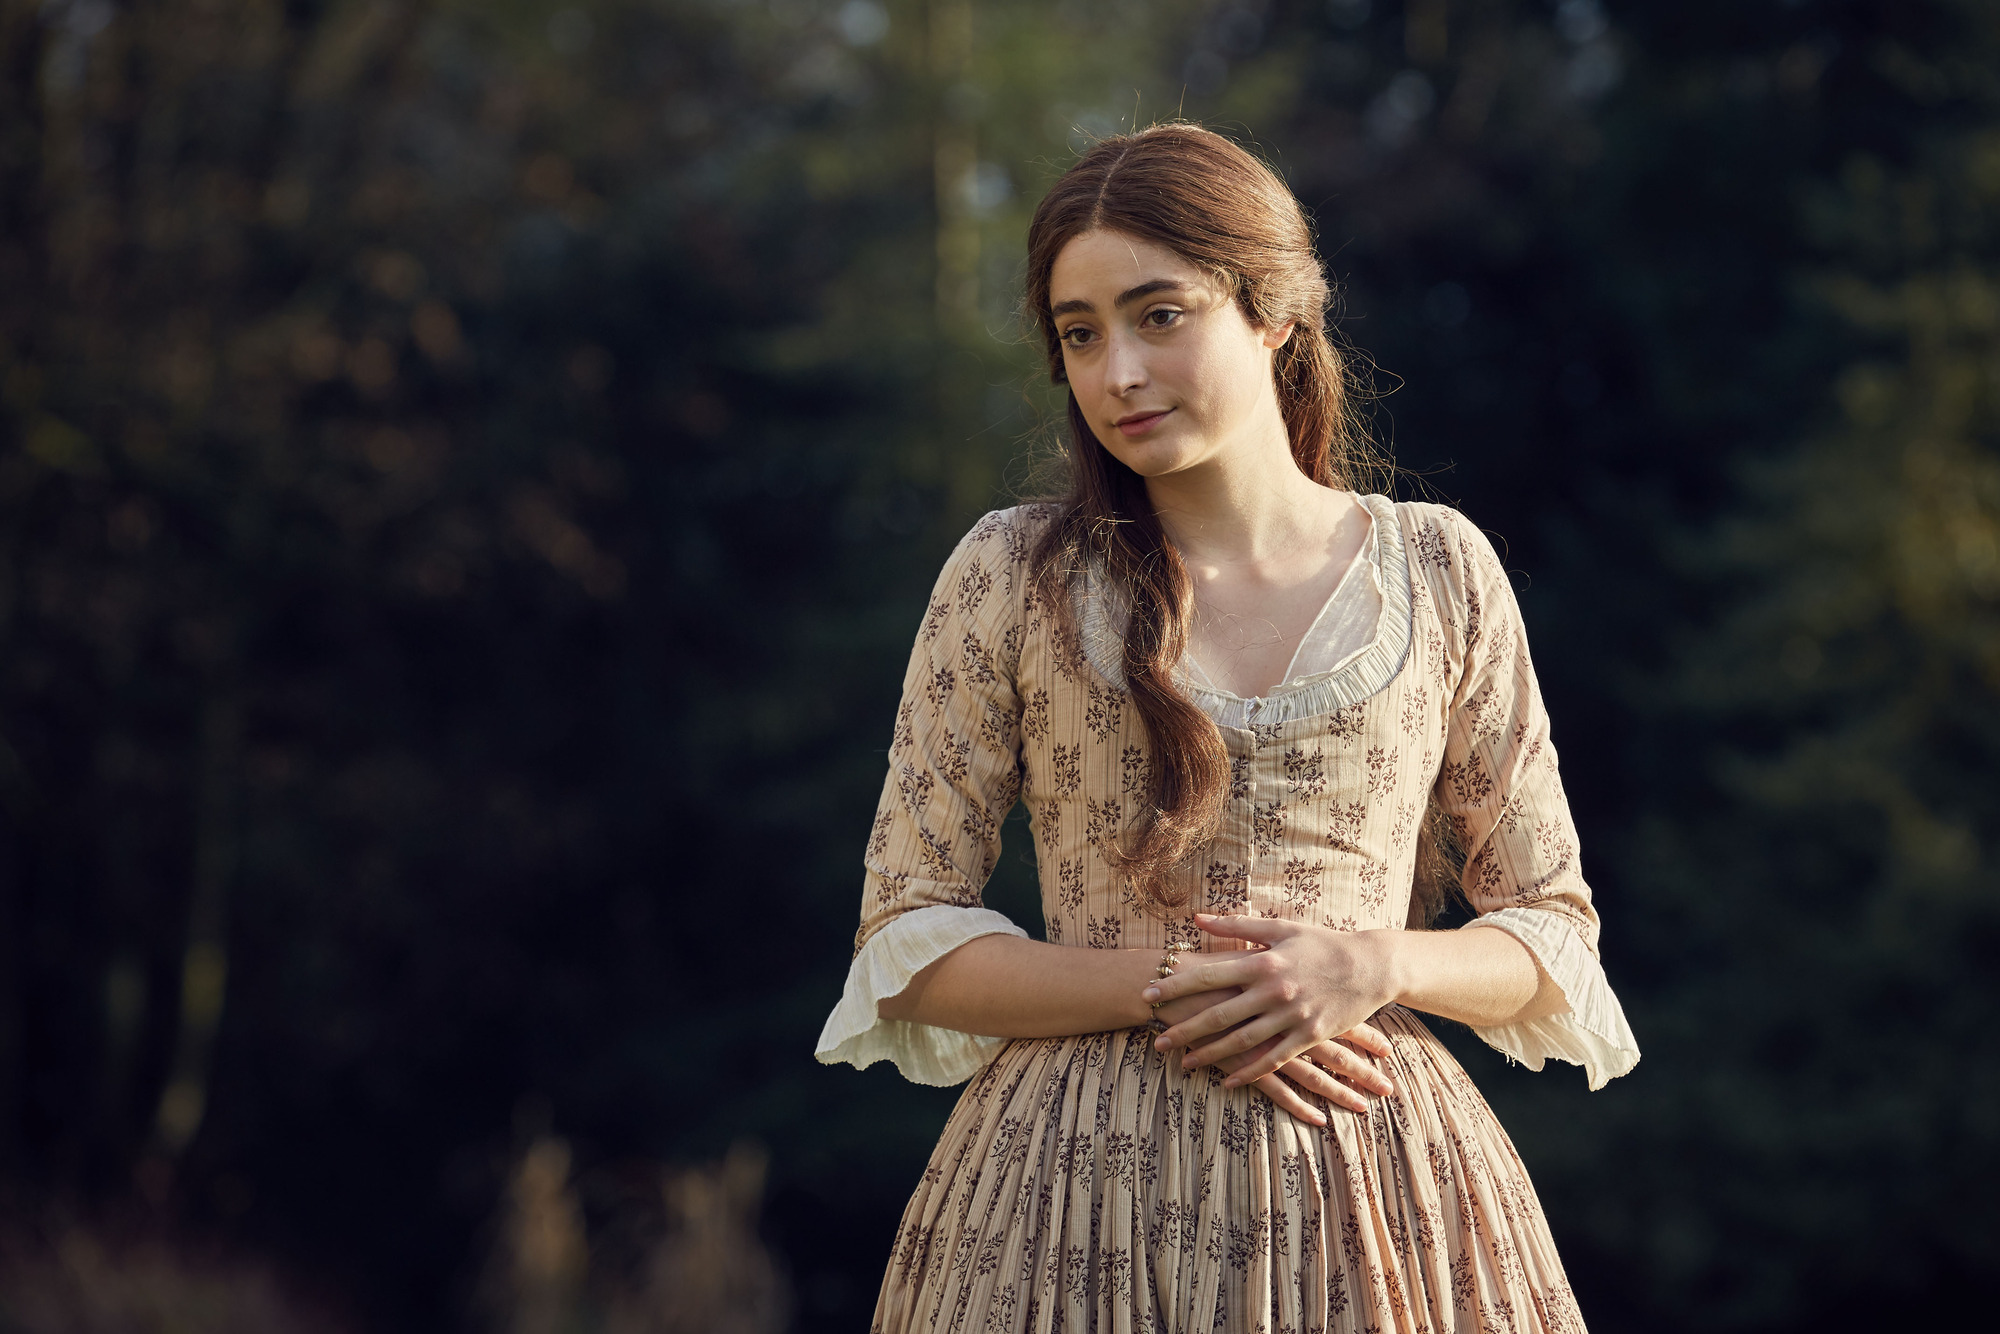 WARNING: Embargoed for publication until 00:00:01 on 27/06/2017 - Programme Name: Poldark S3 - TX: n/a - Episode: Poldark S3 - Episode 4 (No. 4) - Picture Shows: ++PUBLICATION OF THIS IMAGE IS STRICTLY EMBARGOED UNTIL 00.01 HOURS TUESDAY JUNE 27TH, 2017++ Morwenna Chynoweth (ELLISE CHAPPELL) - (C) Mammoth Screen - Photographer: Robert Viglasky